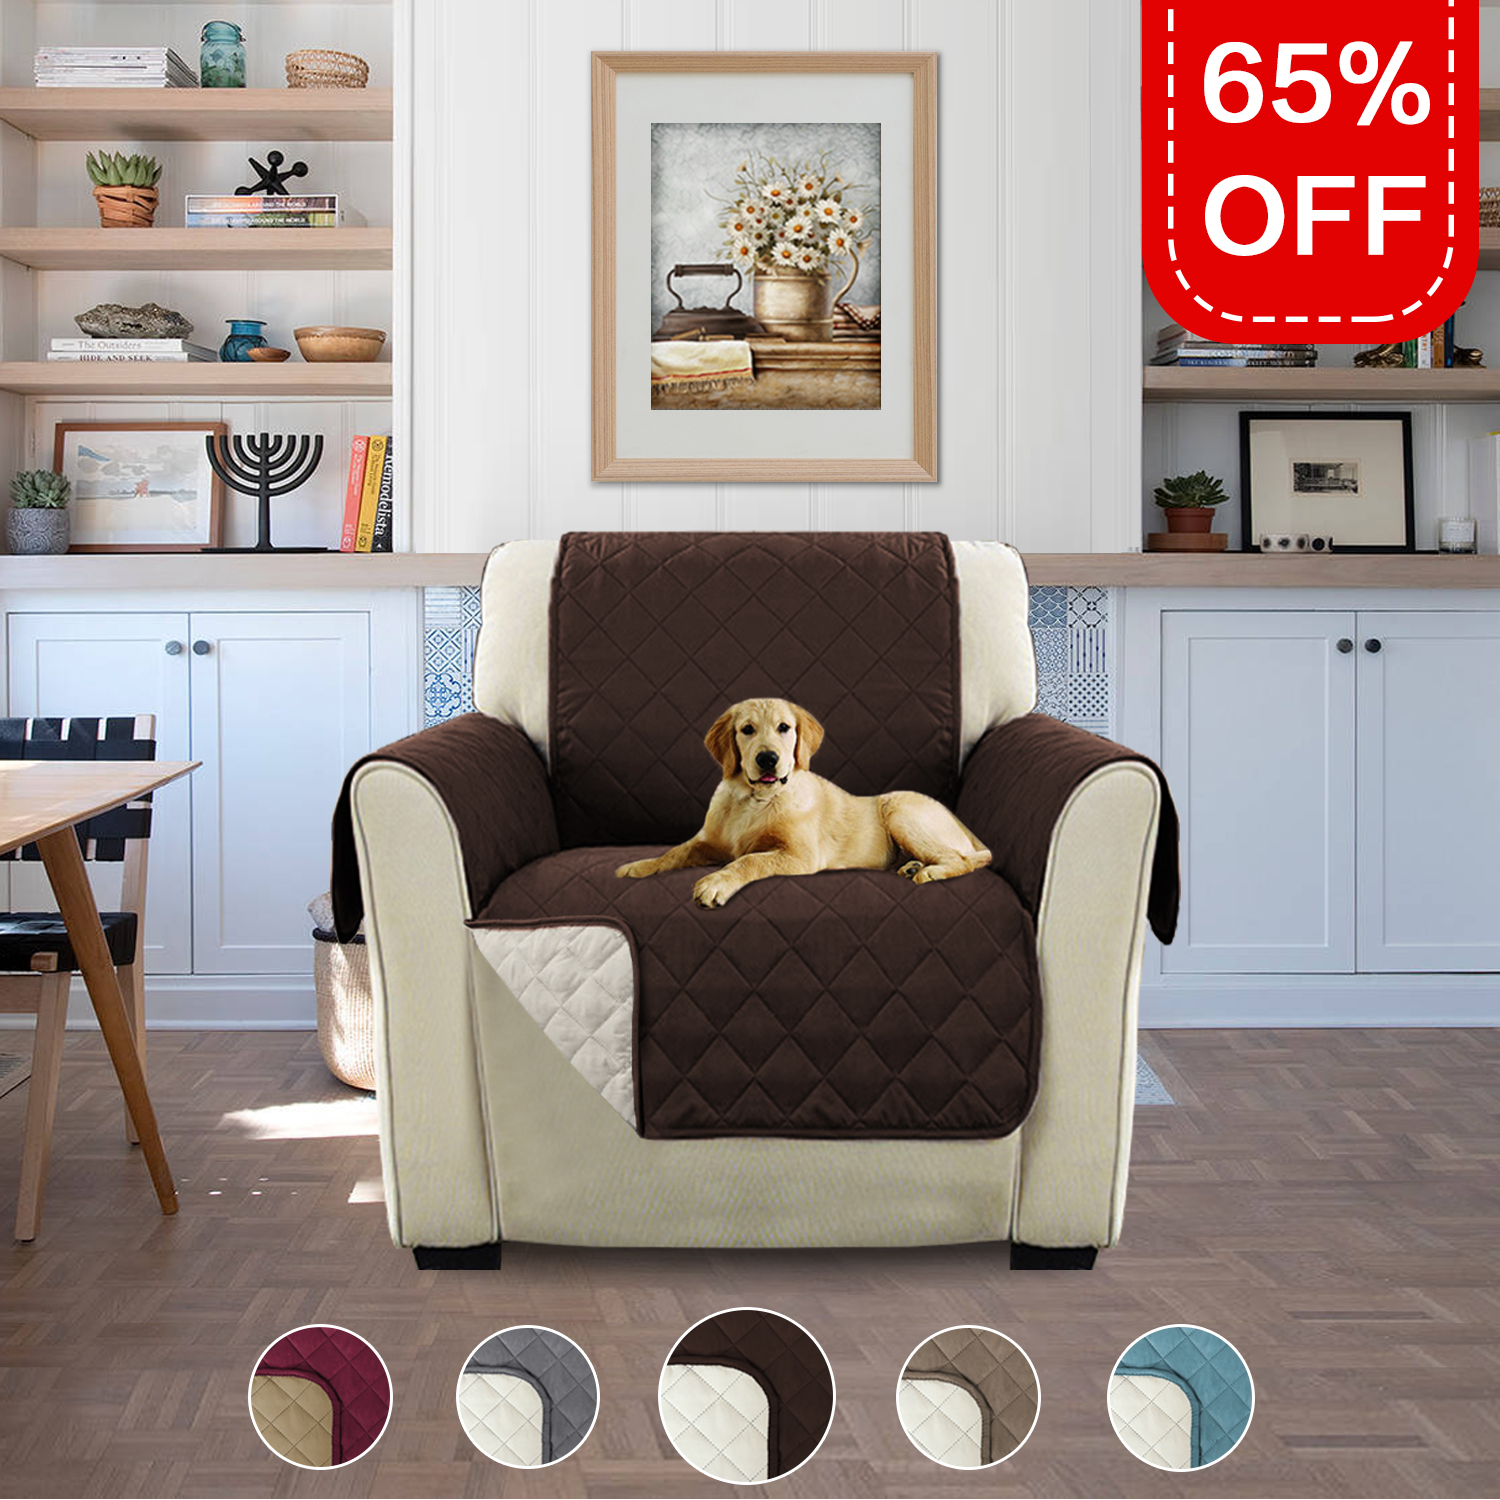 Reversible Water Prevent Faux Suede Furniture Protector, Features Protect from Pets, Spills, Wear and Tear (79 inch x 68 inch for Recliner, Smoke Blue/Beige)